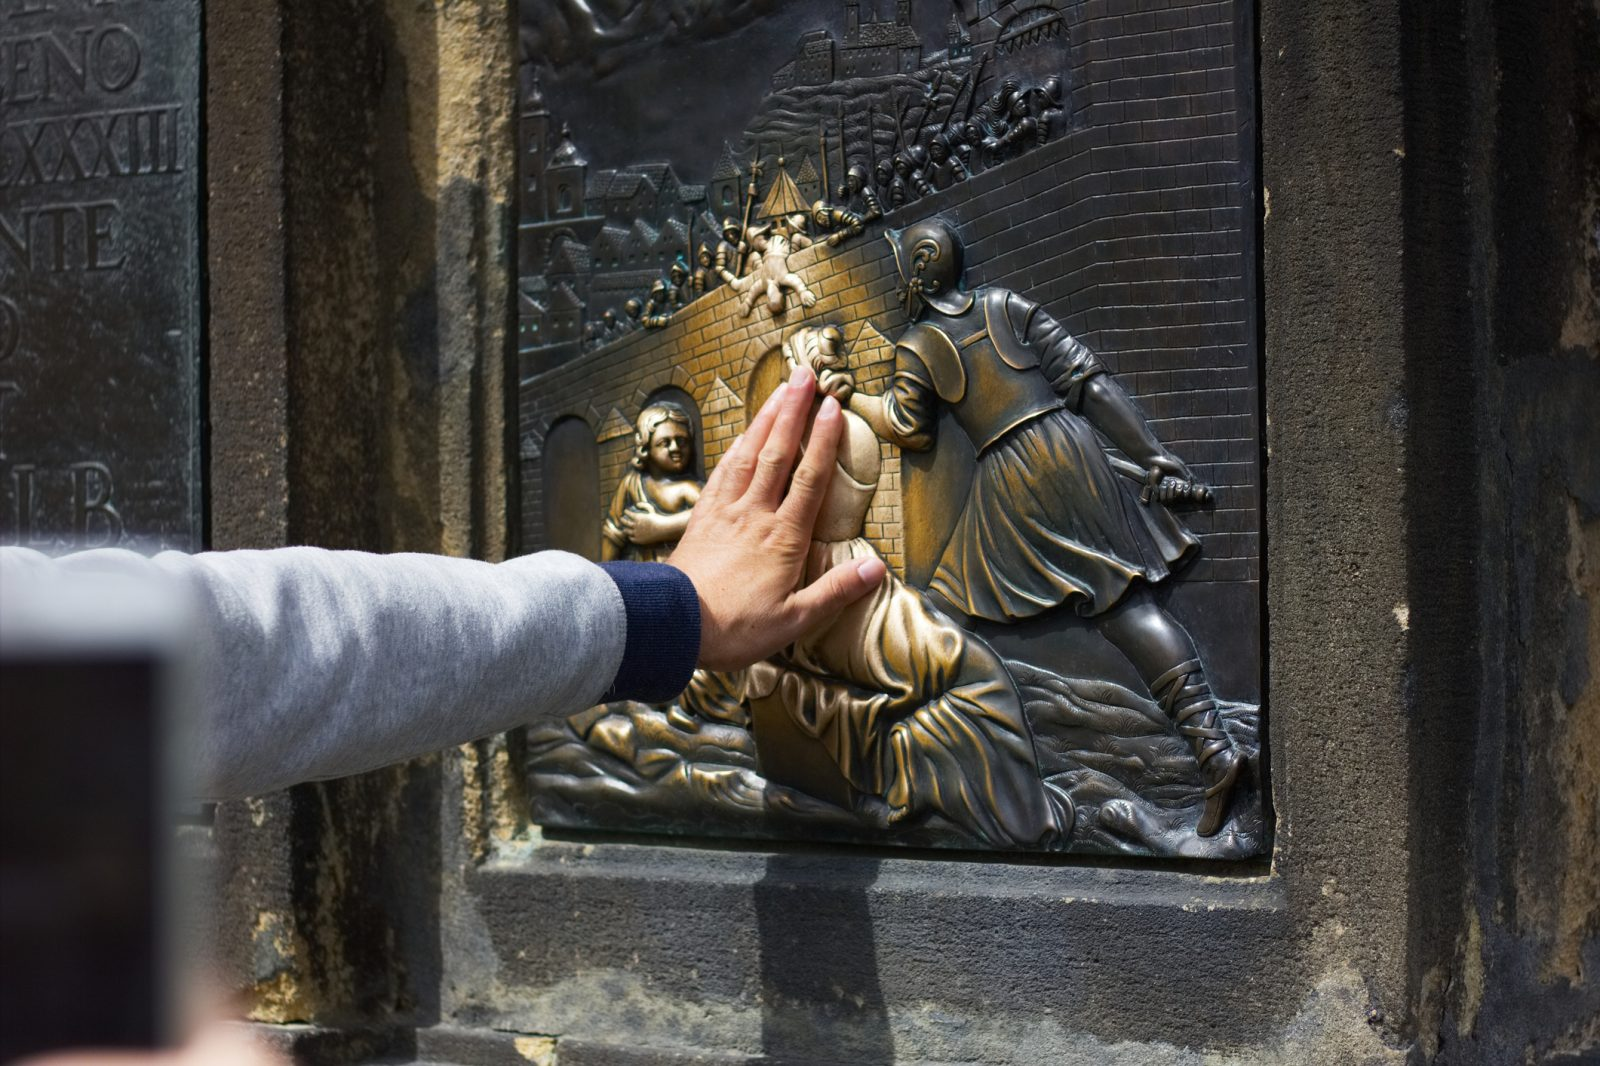 Touching Prague statues and other tourist rituals may be too 'hands-on' for your health, say scientists